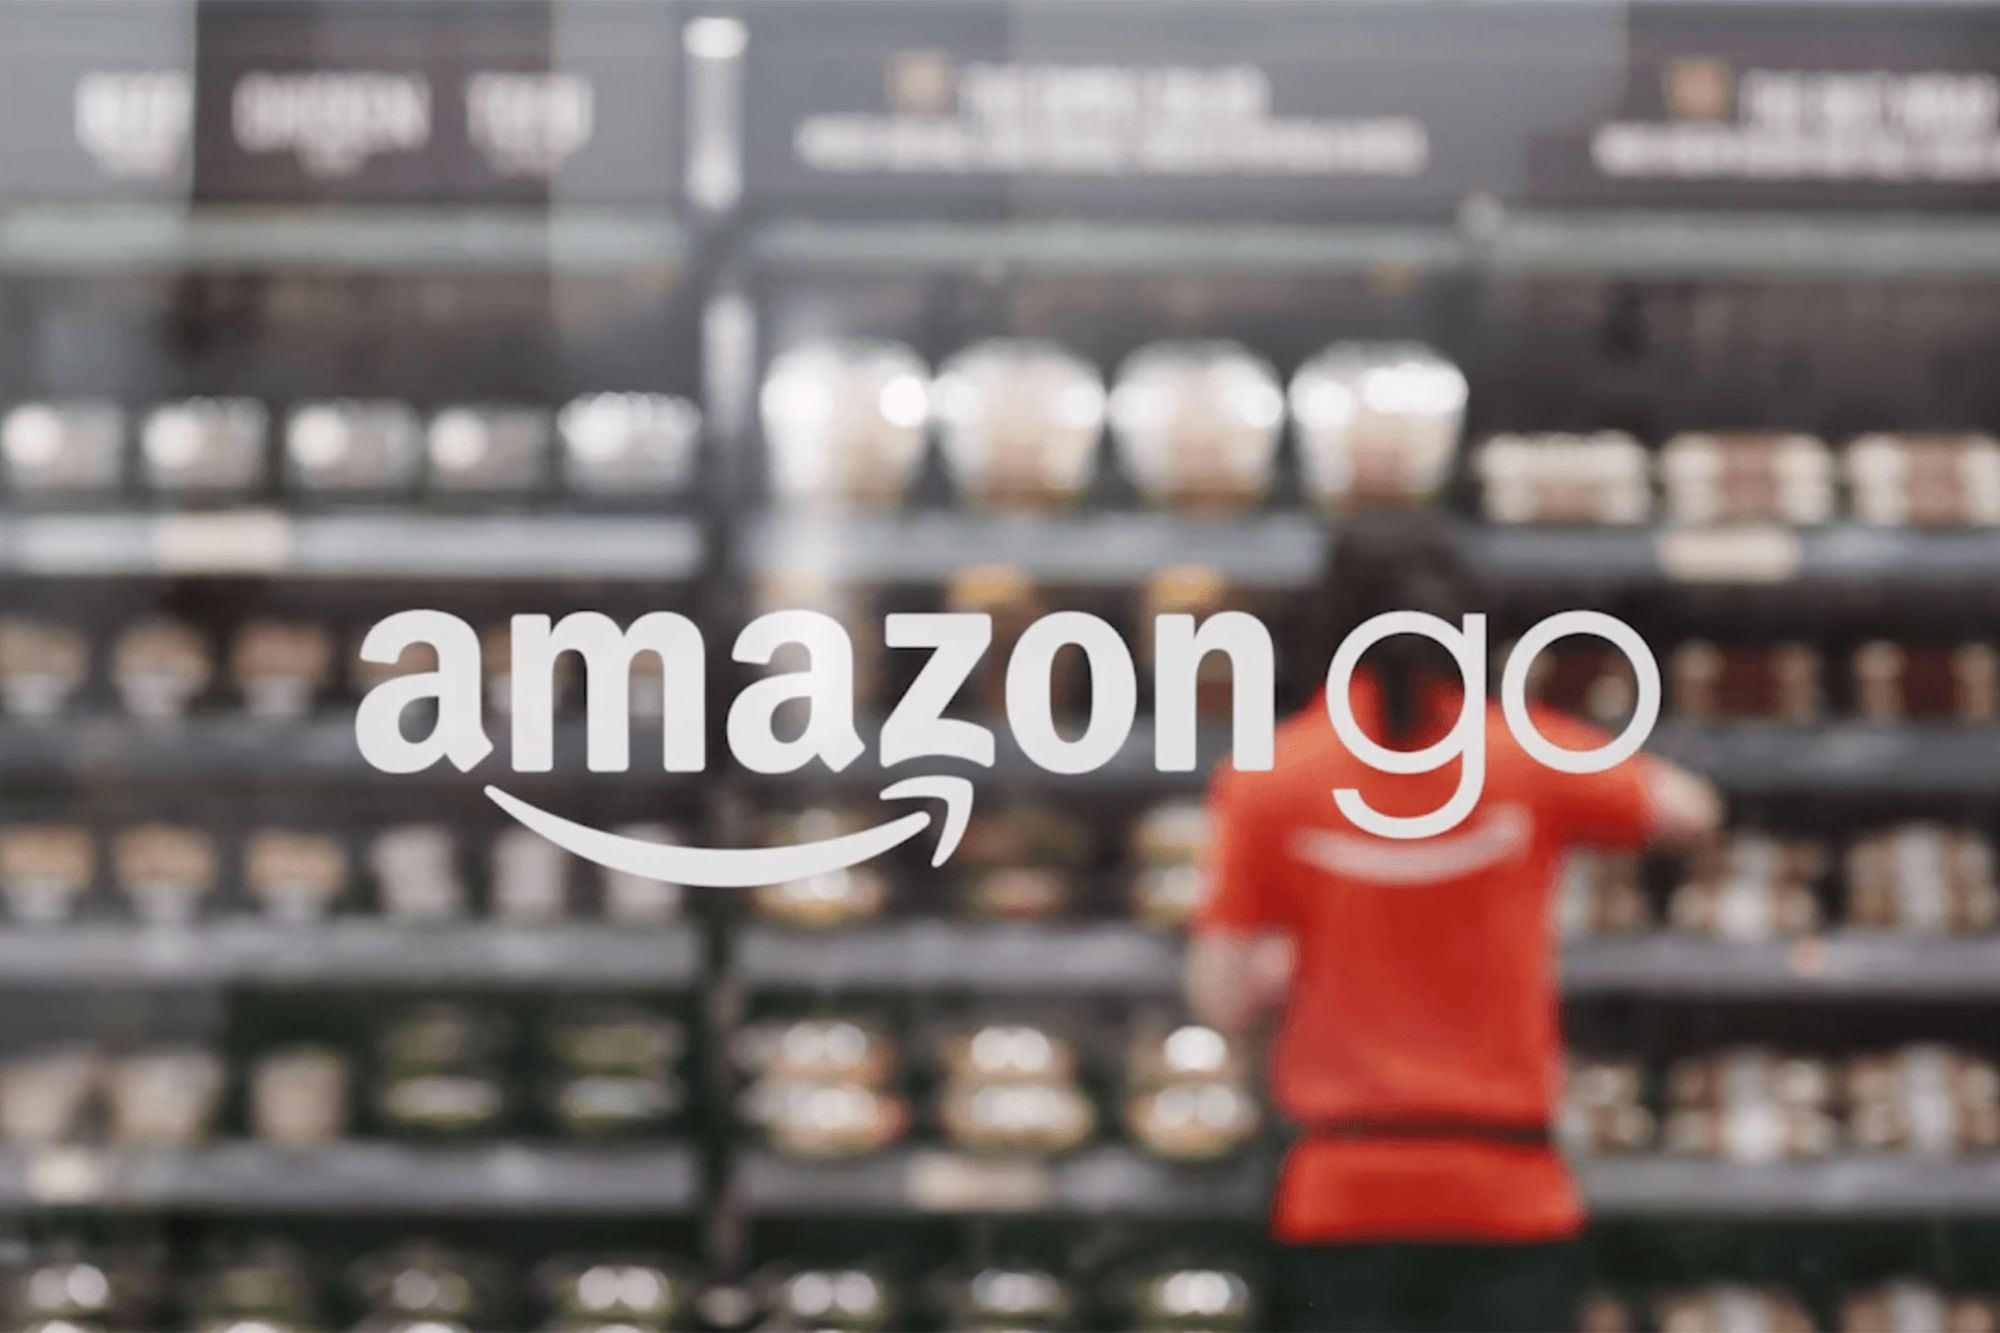 Amazon Opens First Big 'Go' Grocery Store in Seattle